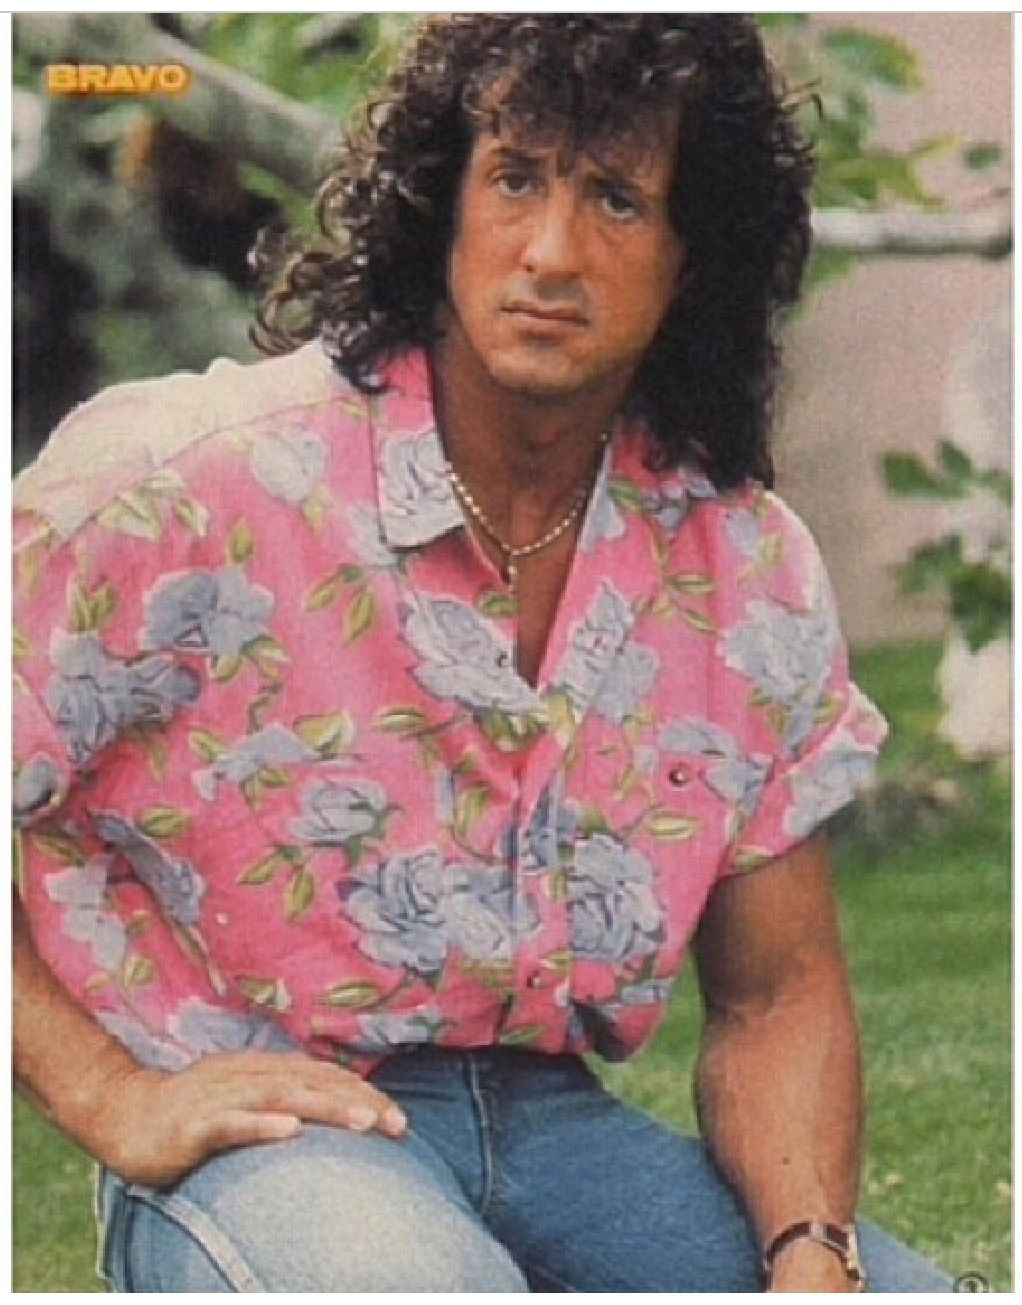 Oh, this pink shirt. I forgive you Sly.   Sylvester ...